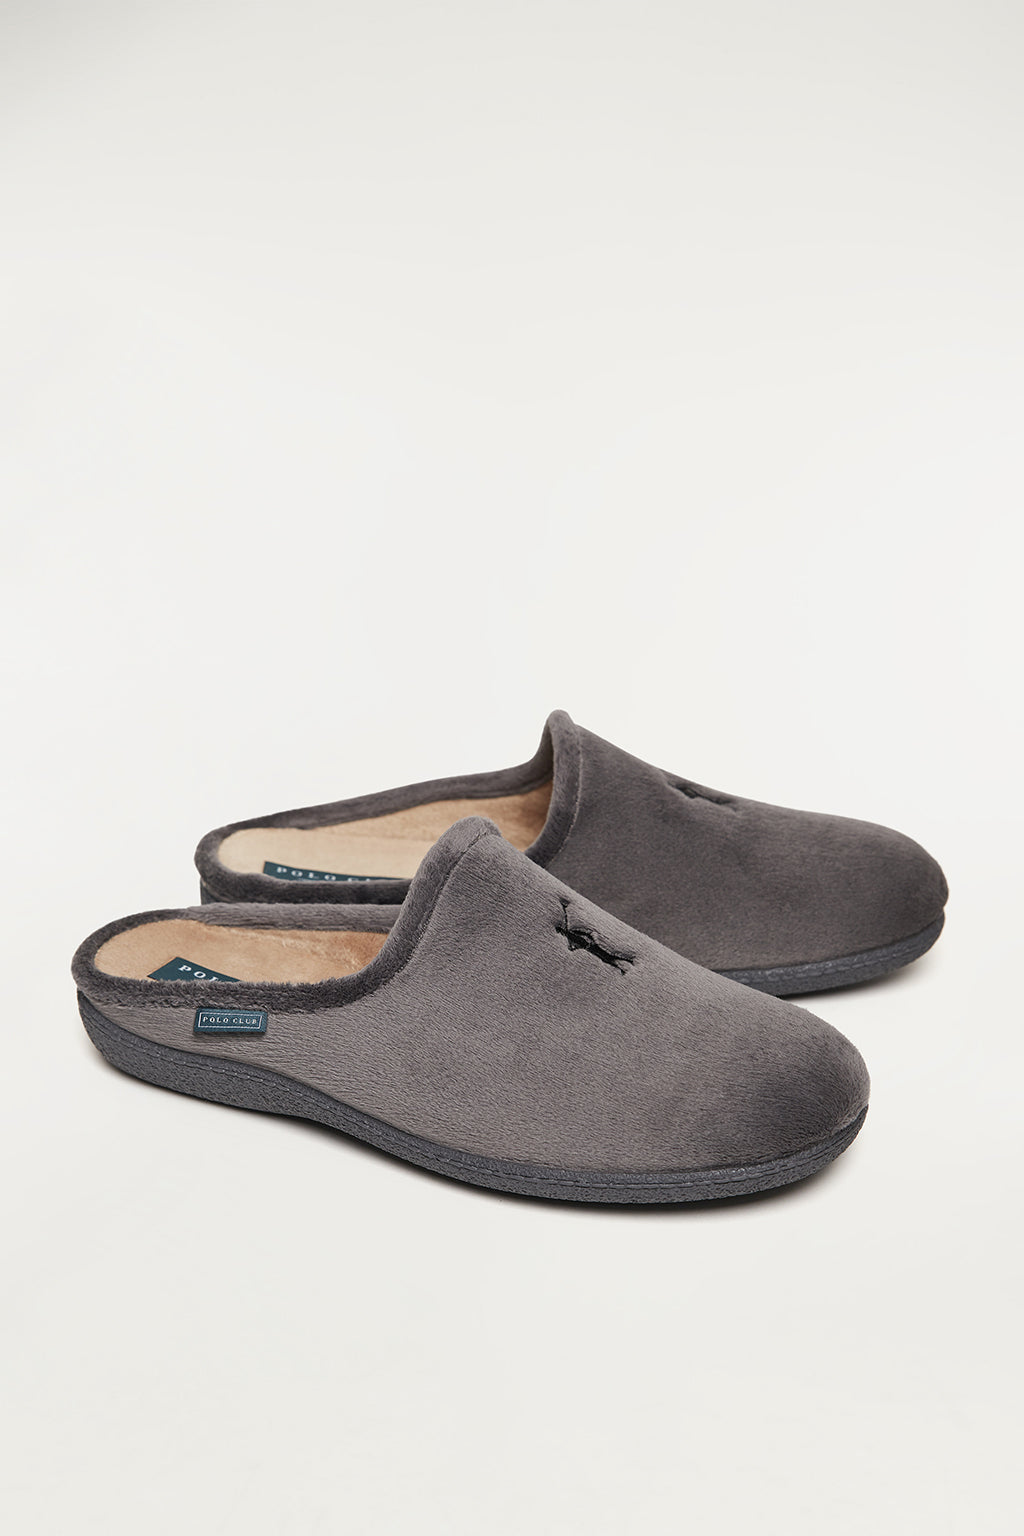 Grey sleepers with front embroidered logo in contrast colour